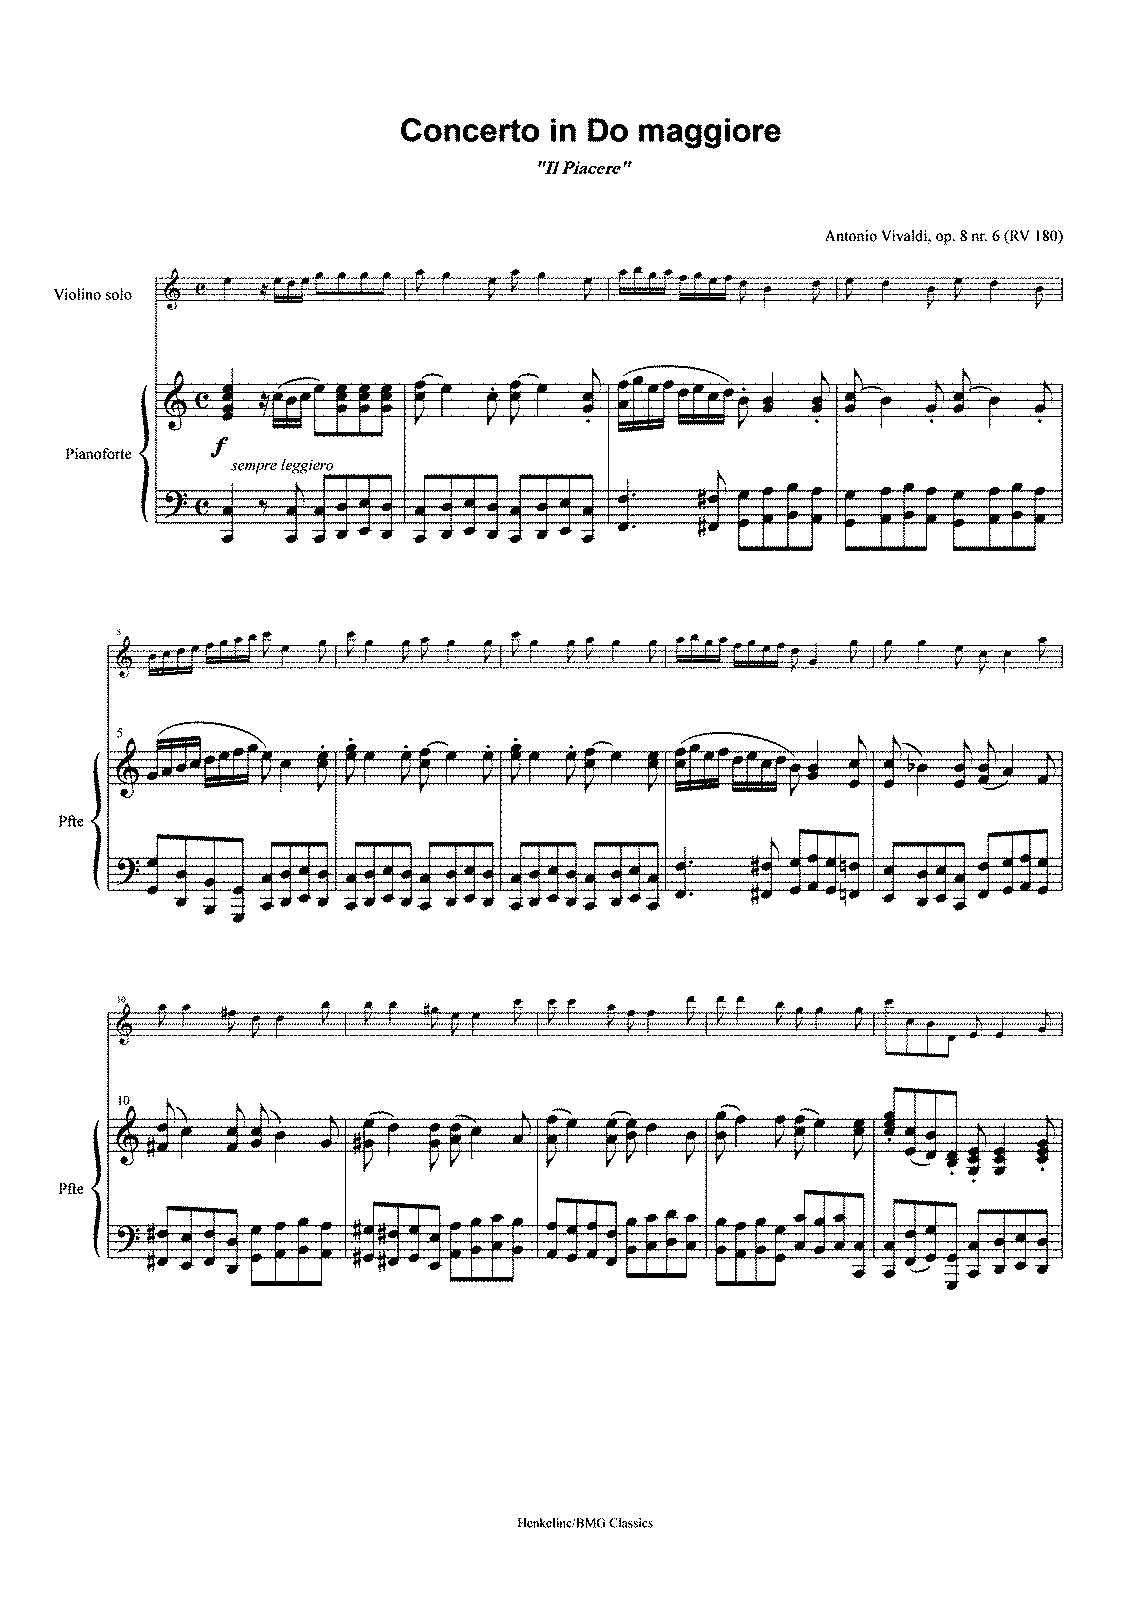 PMLP416340-Vivaldi - Concerto in C major for violin, strings and continuo RV 180 (Il Piacere), piano score, 1st movement.pdf